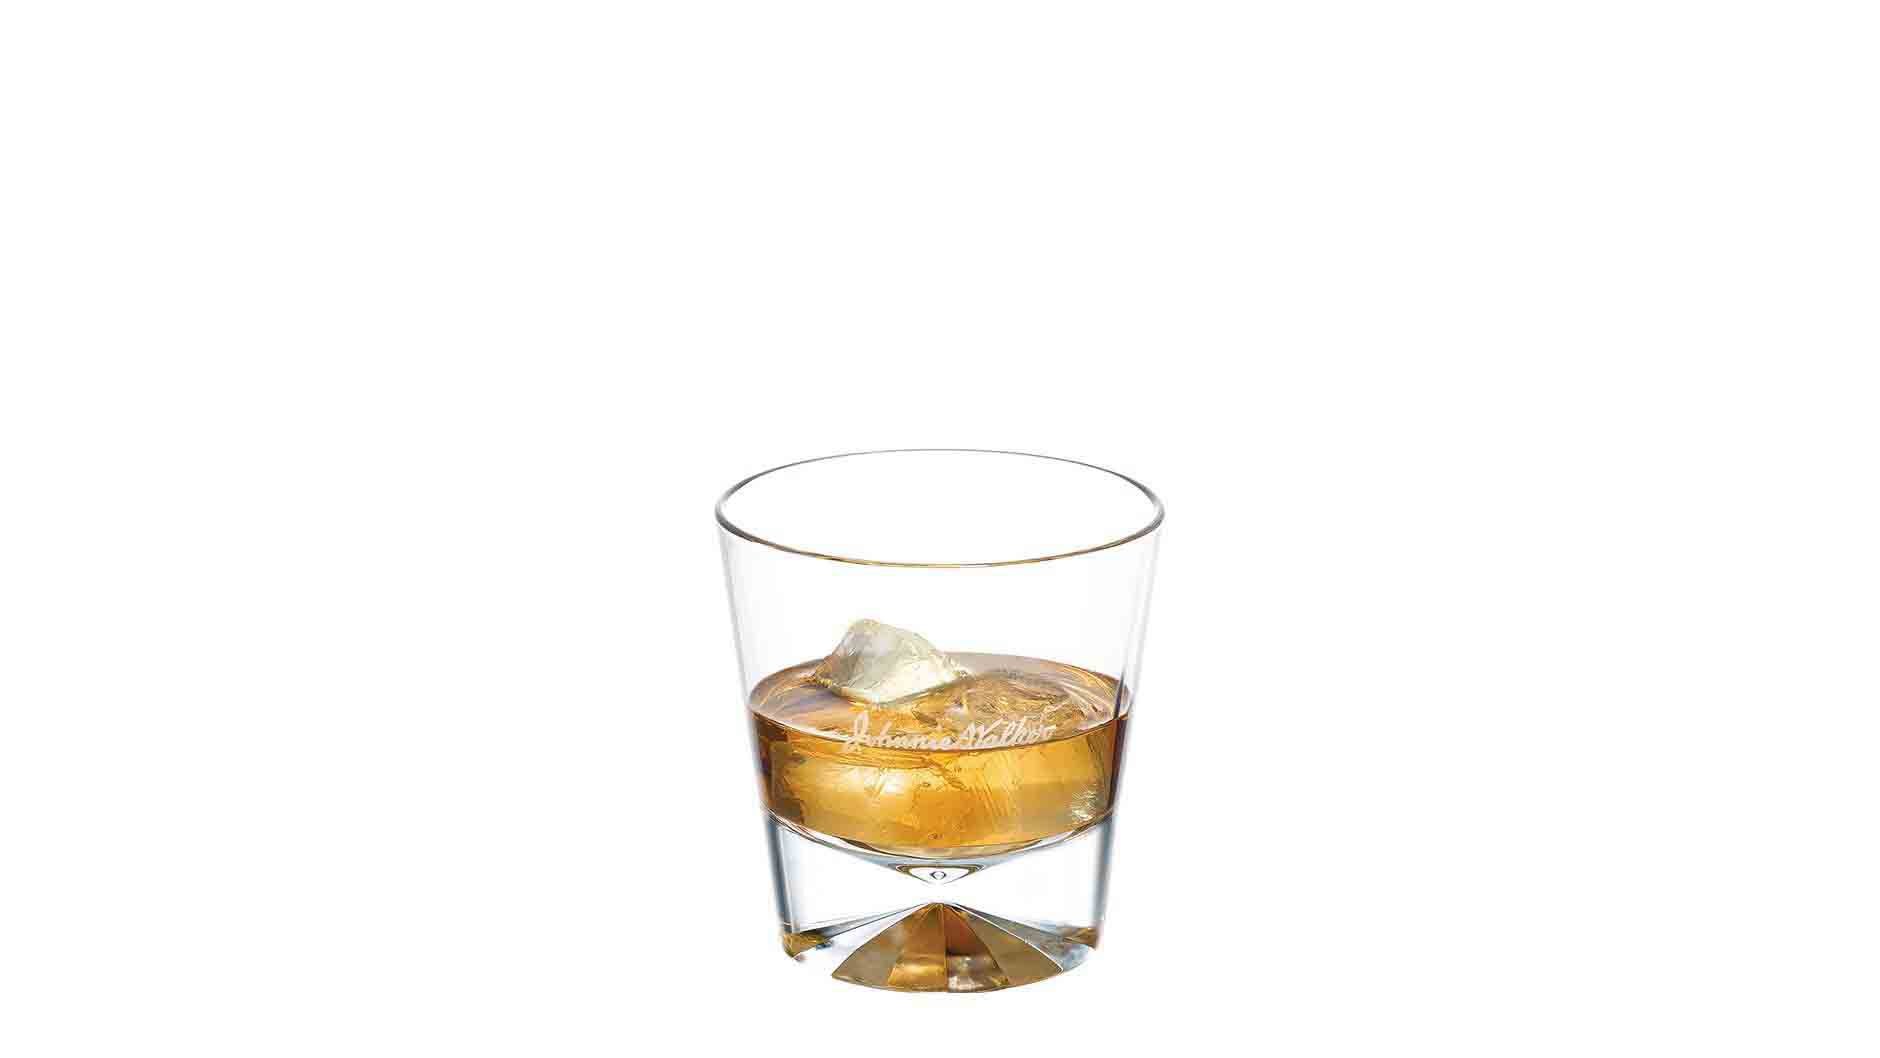 Johnnie Walker Black Label on the Rocks dans un verre à whisky